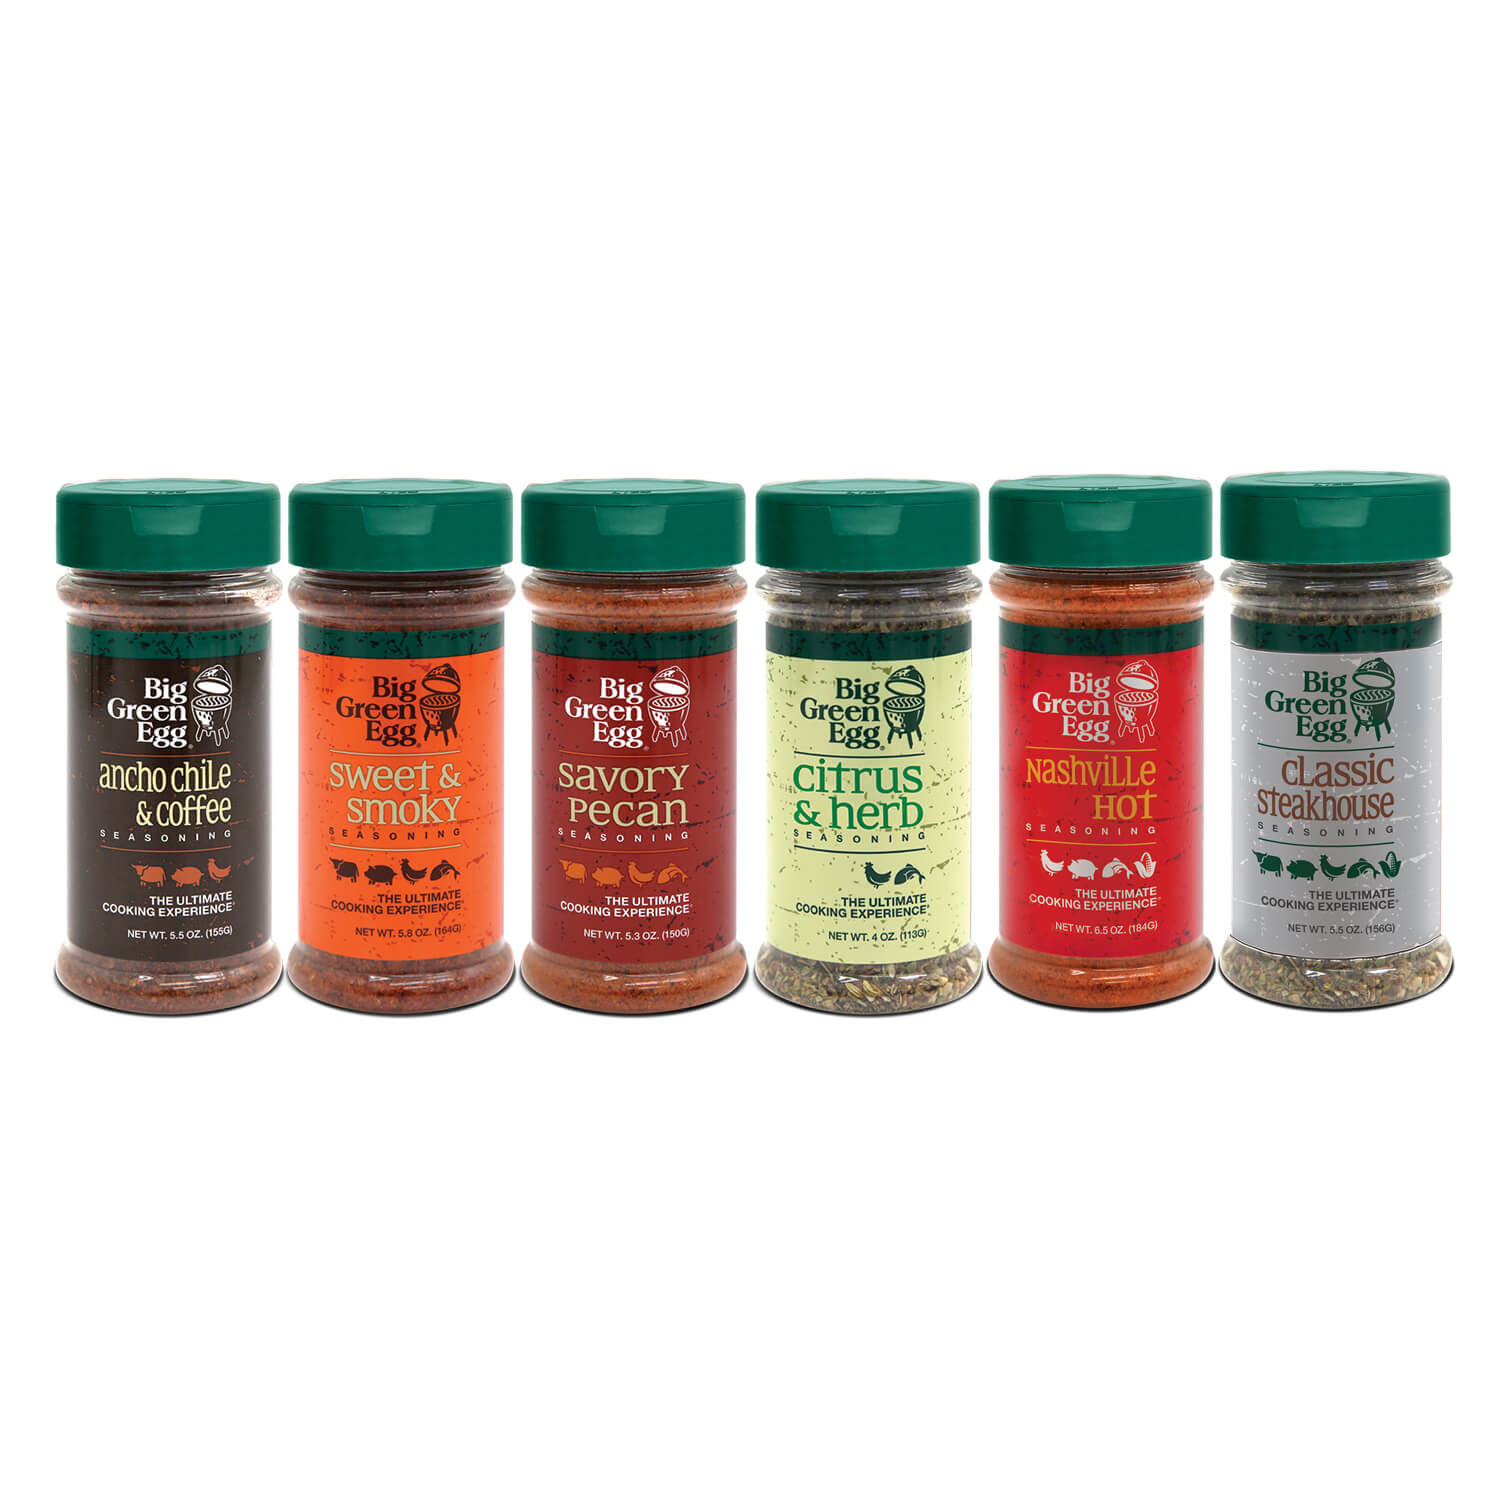 BGE Seasonings